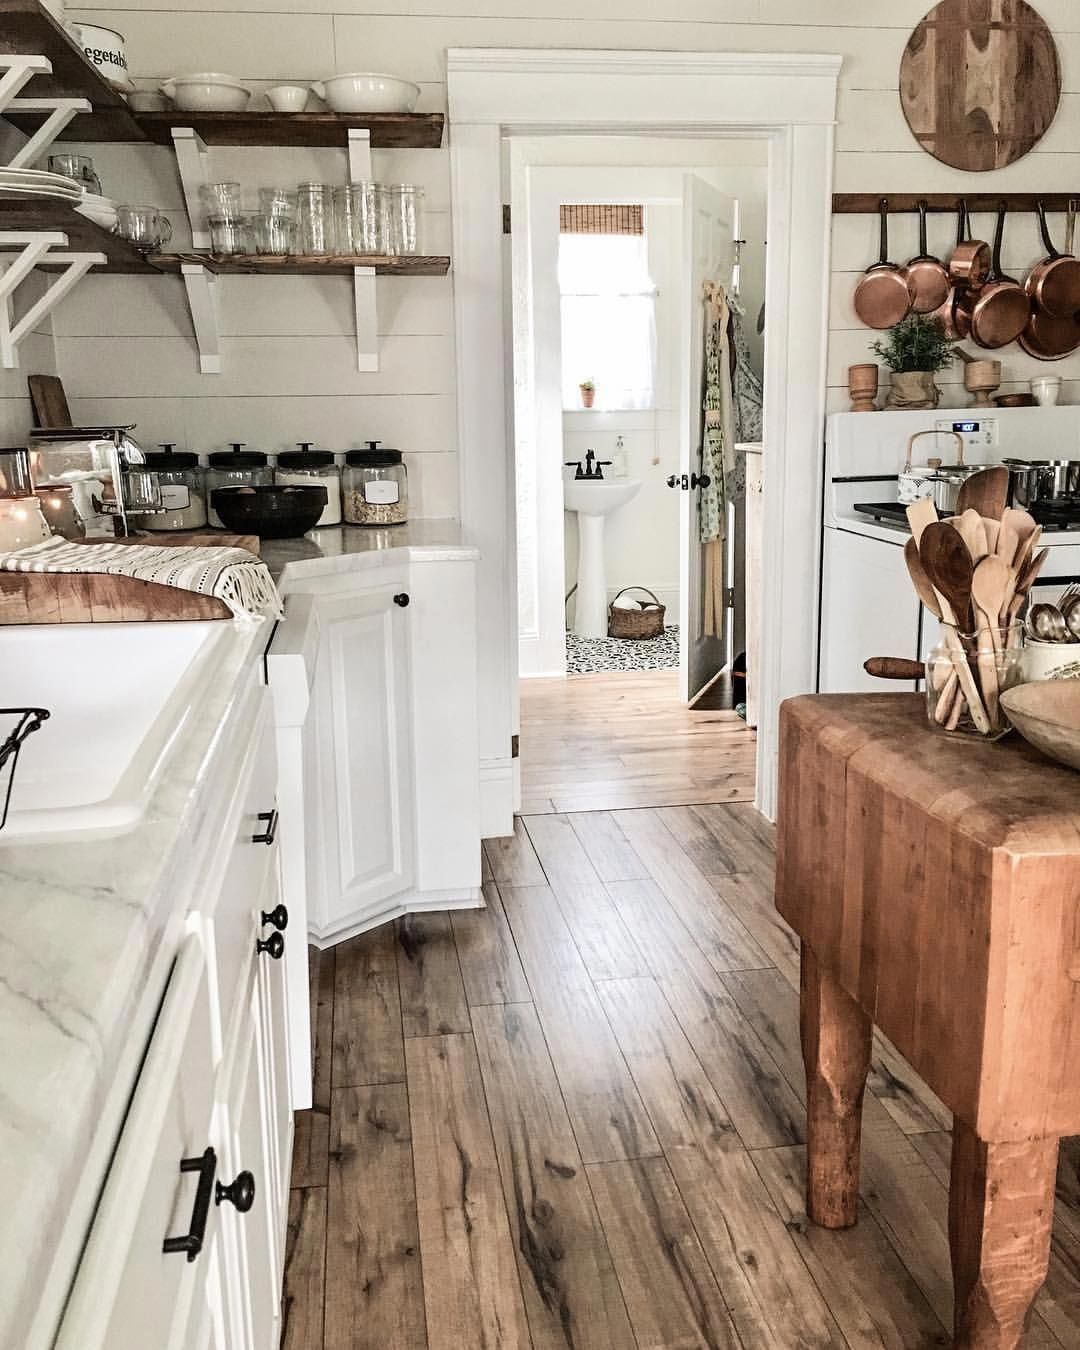 Get Inspired By These Real Life Small Kitchen Design Ideas You Ll Be Motivated To Remodel Or Redecorate Your Own With